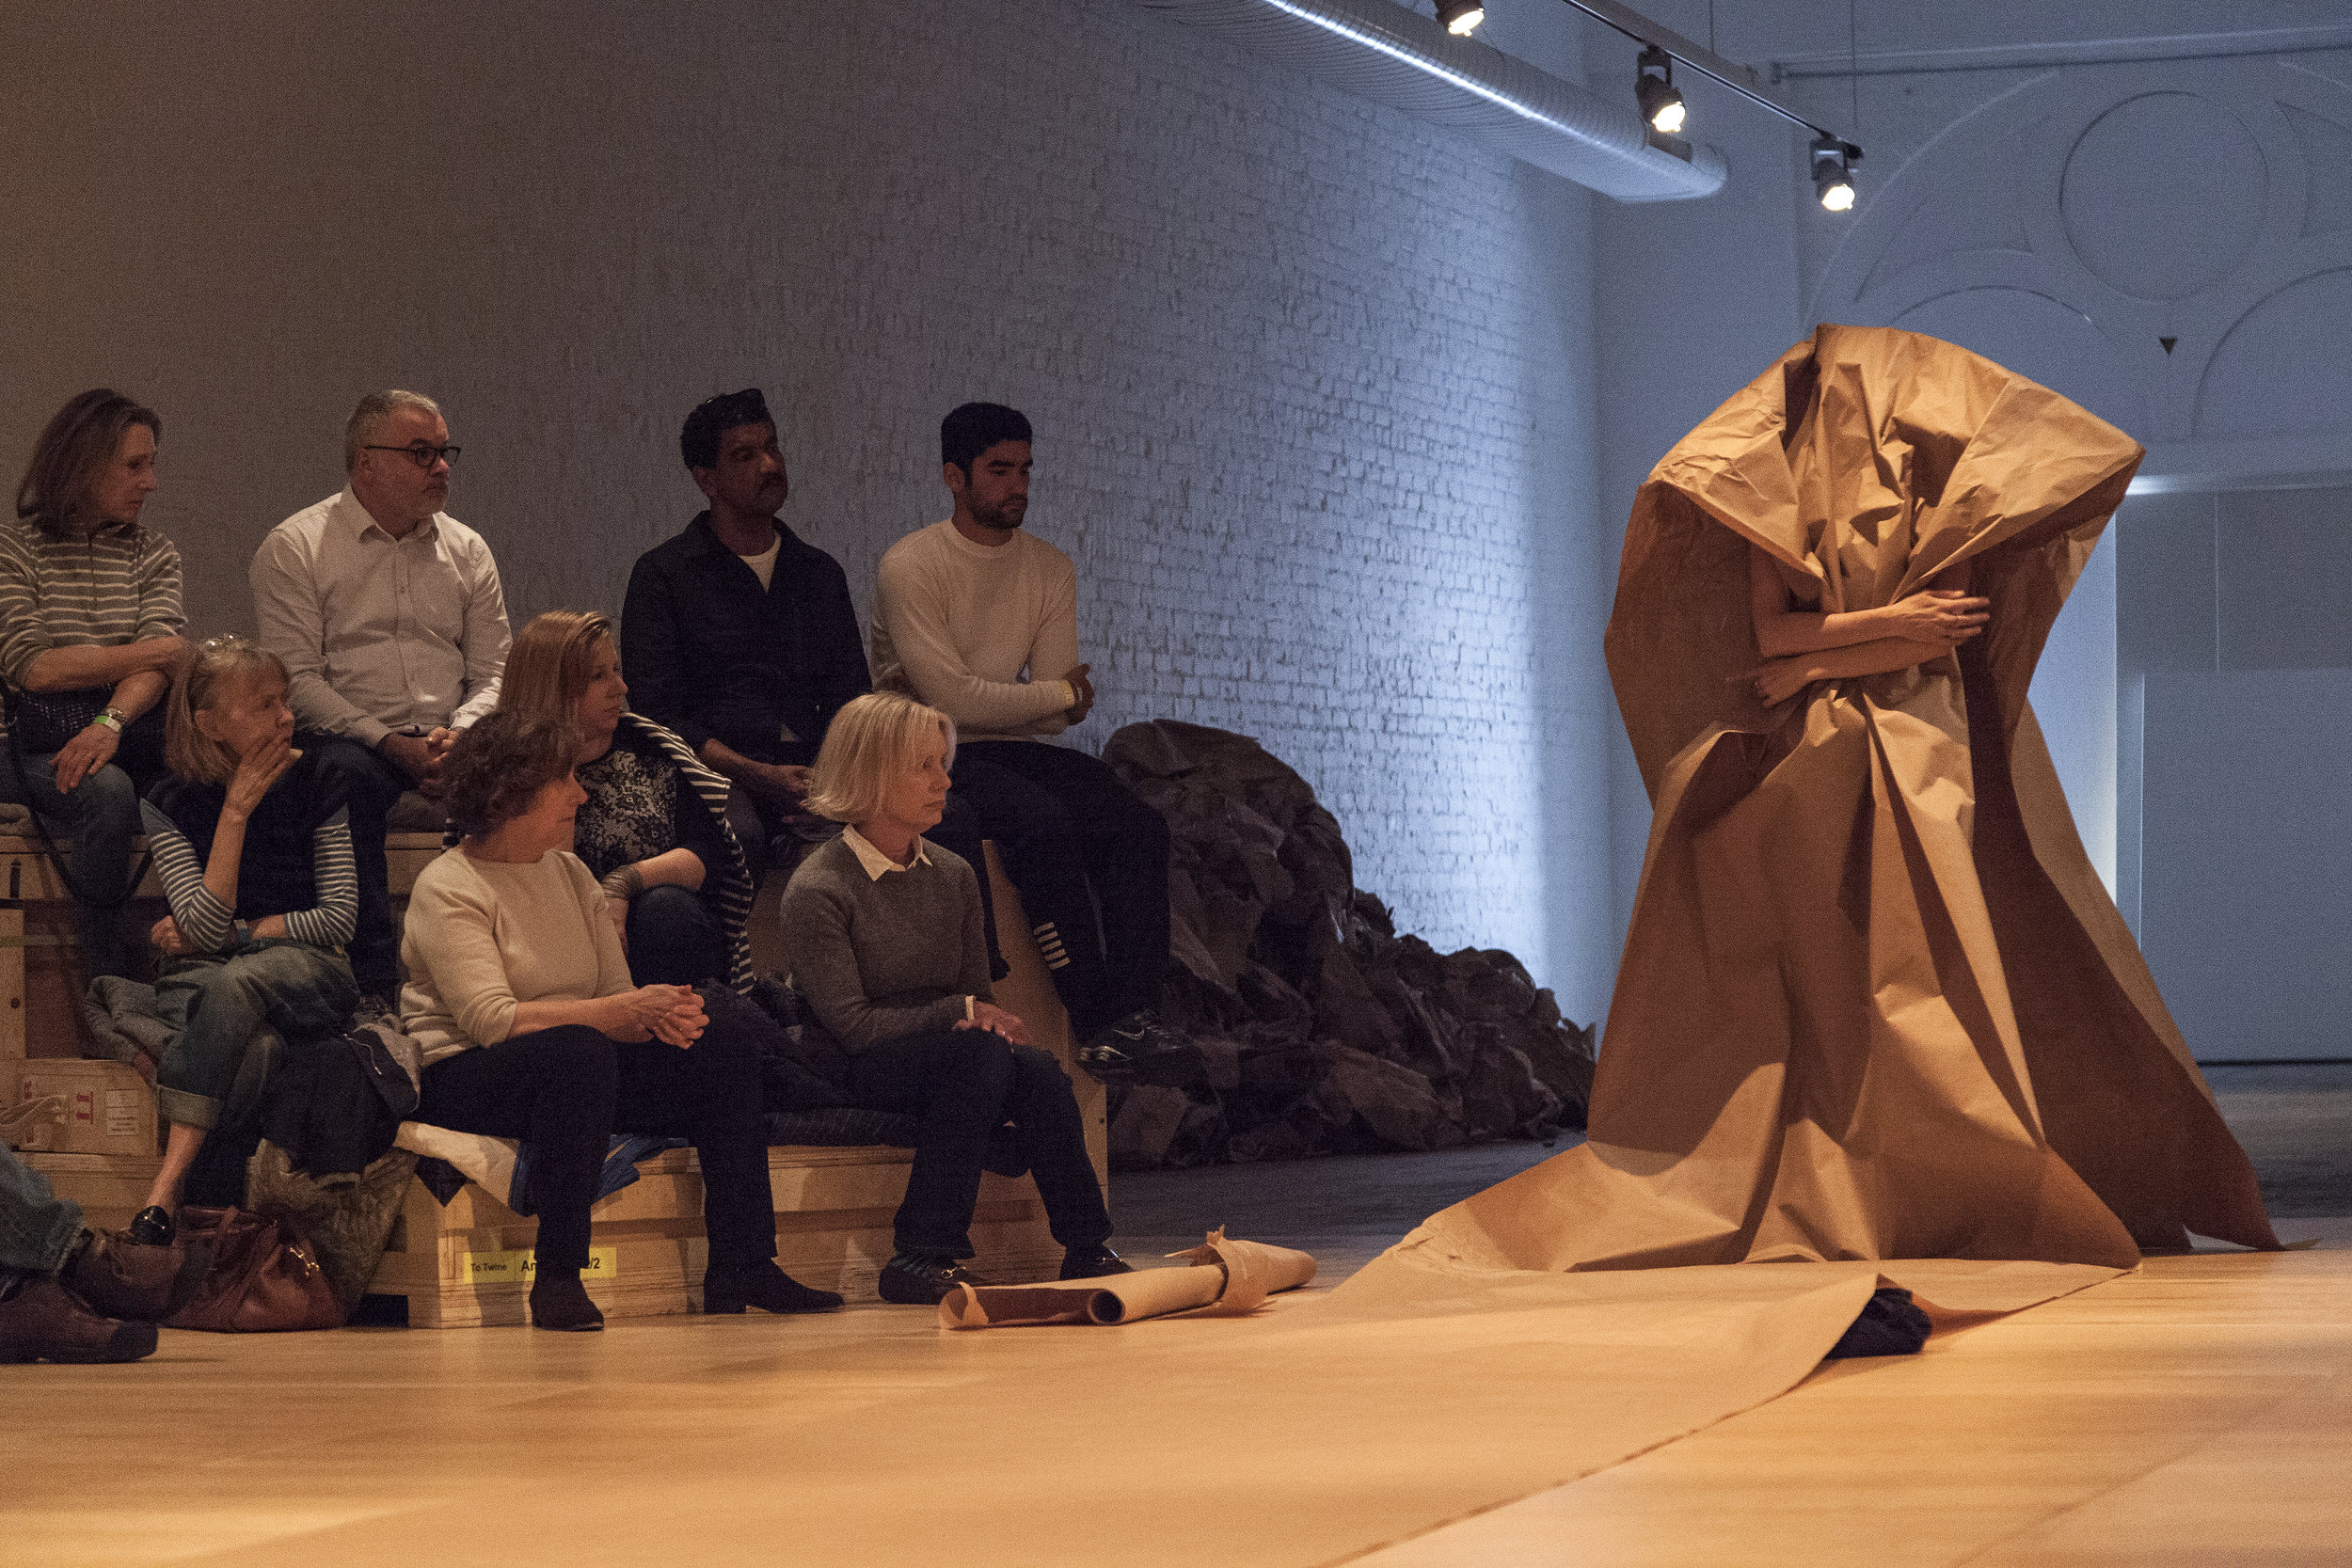 Janine Antoni in collaboration with Anna Halprin Paper Dance, 2013 Premiered at The Fabric Workshop and Museum, Philadelphia in 2016 Photographed by Carlos Avendaño. Courtesy of the artists and Luhring Augustine, New York